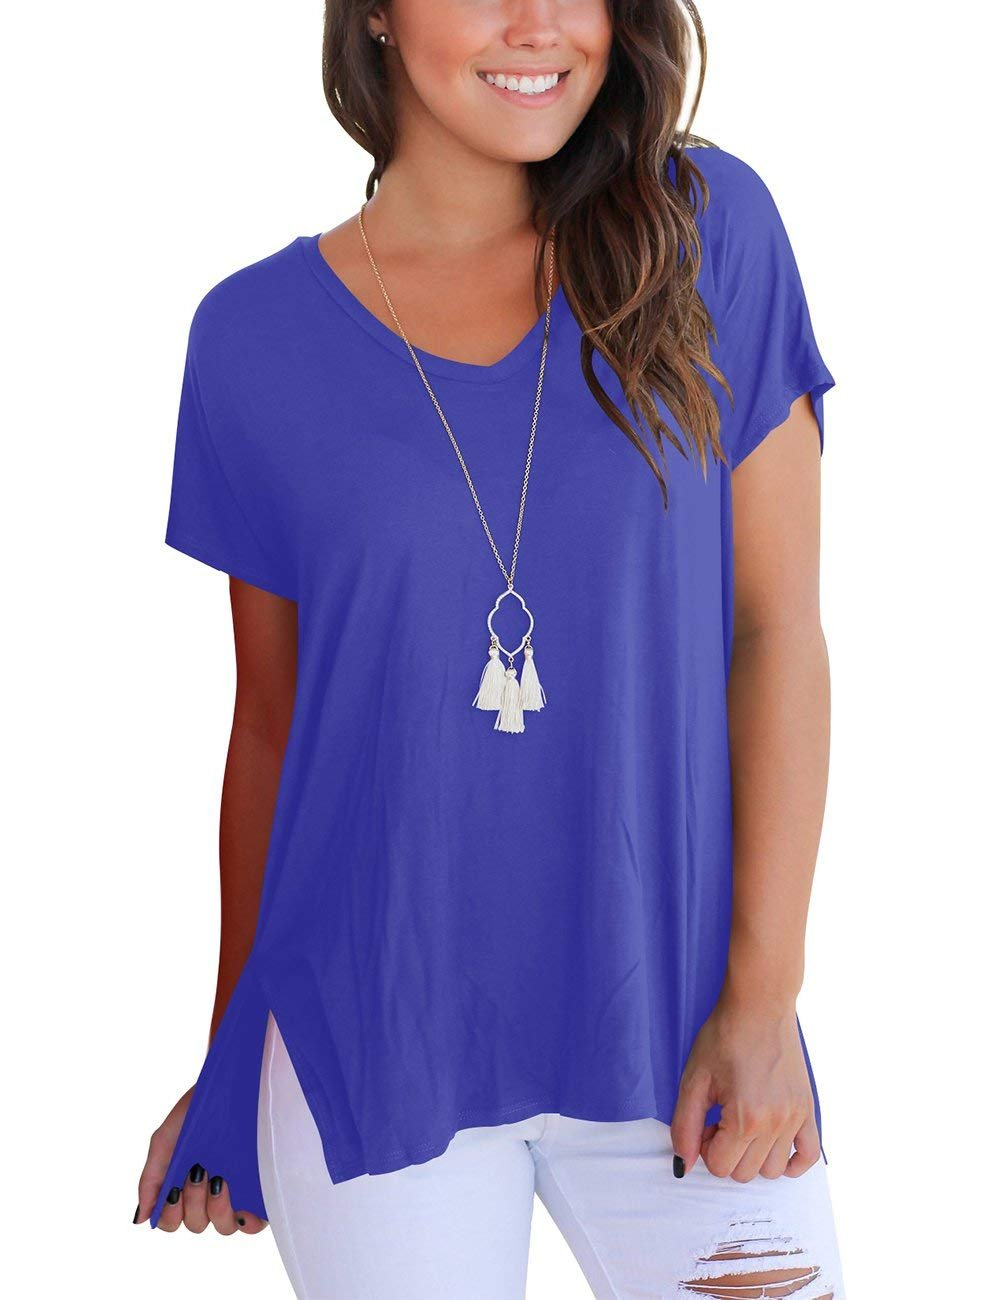 LILBETTER Women's Short Sleeve High Low Loose T Shirt Basic Tee Tops with Side Split (L, Royal Blue)